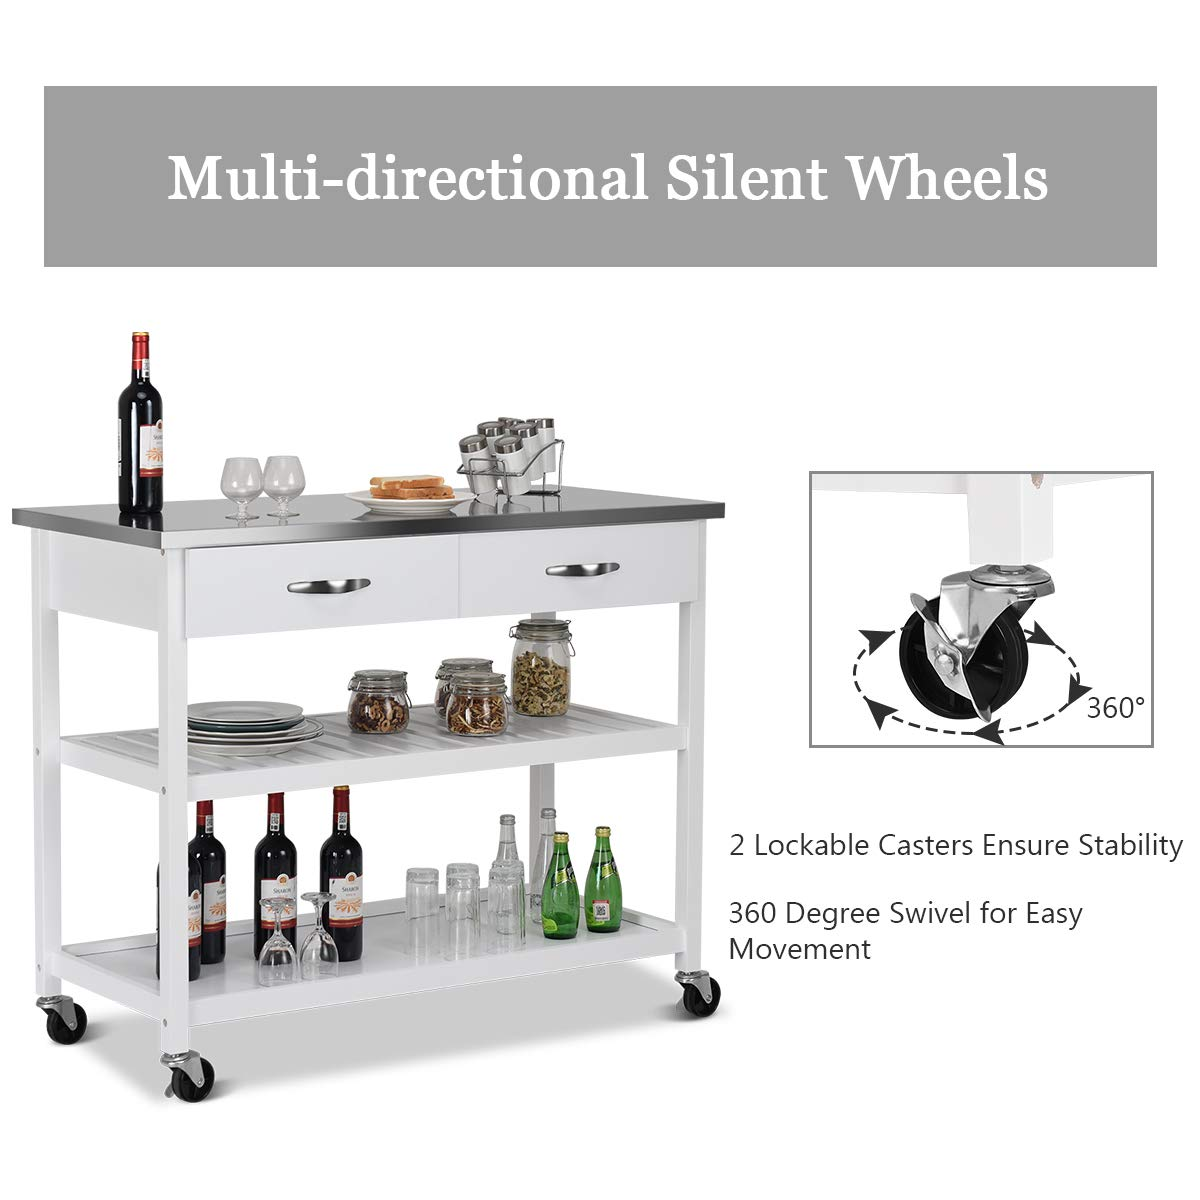 Giantex Kitchen Trolley Cart Rolling Island Cart Serving Cart Large Storage with Stainless Steel Countertop, Lockable Wheels, 2 Drawers and Shelf Utility Cart for Home and Restaurant, (White) by Giantex (Image #6)